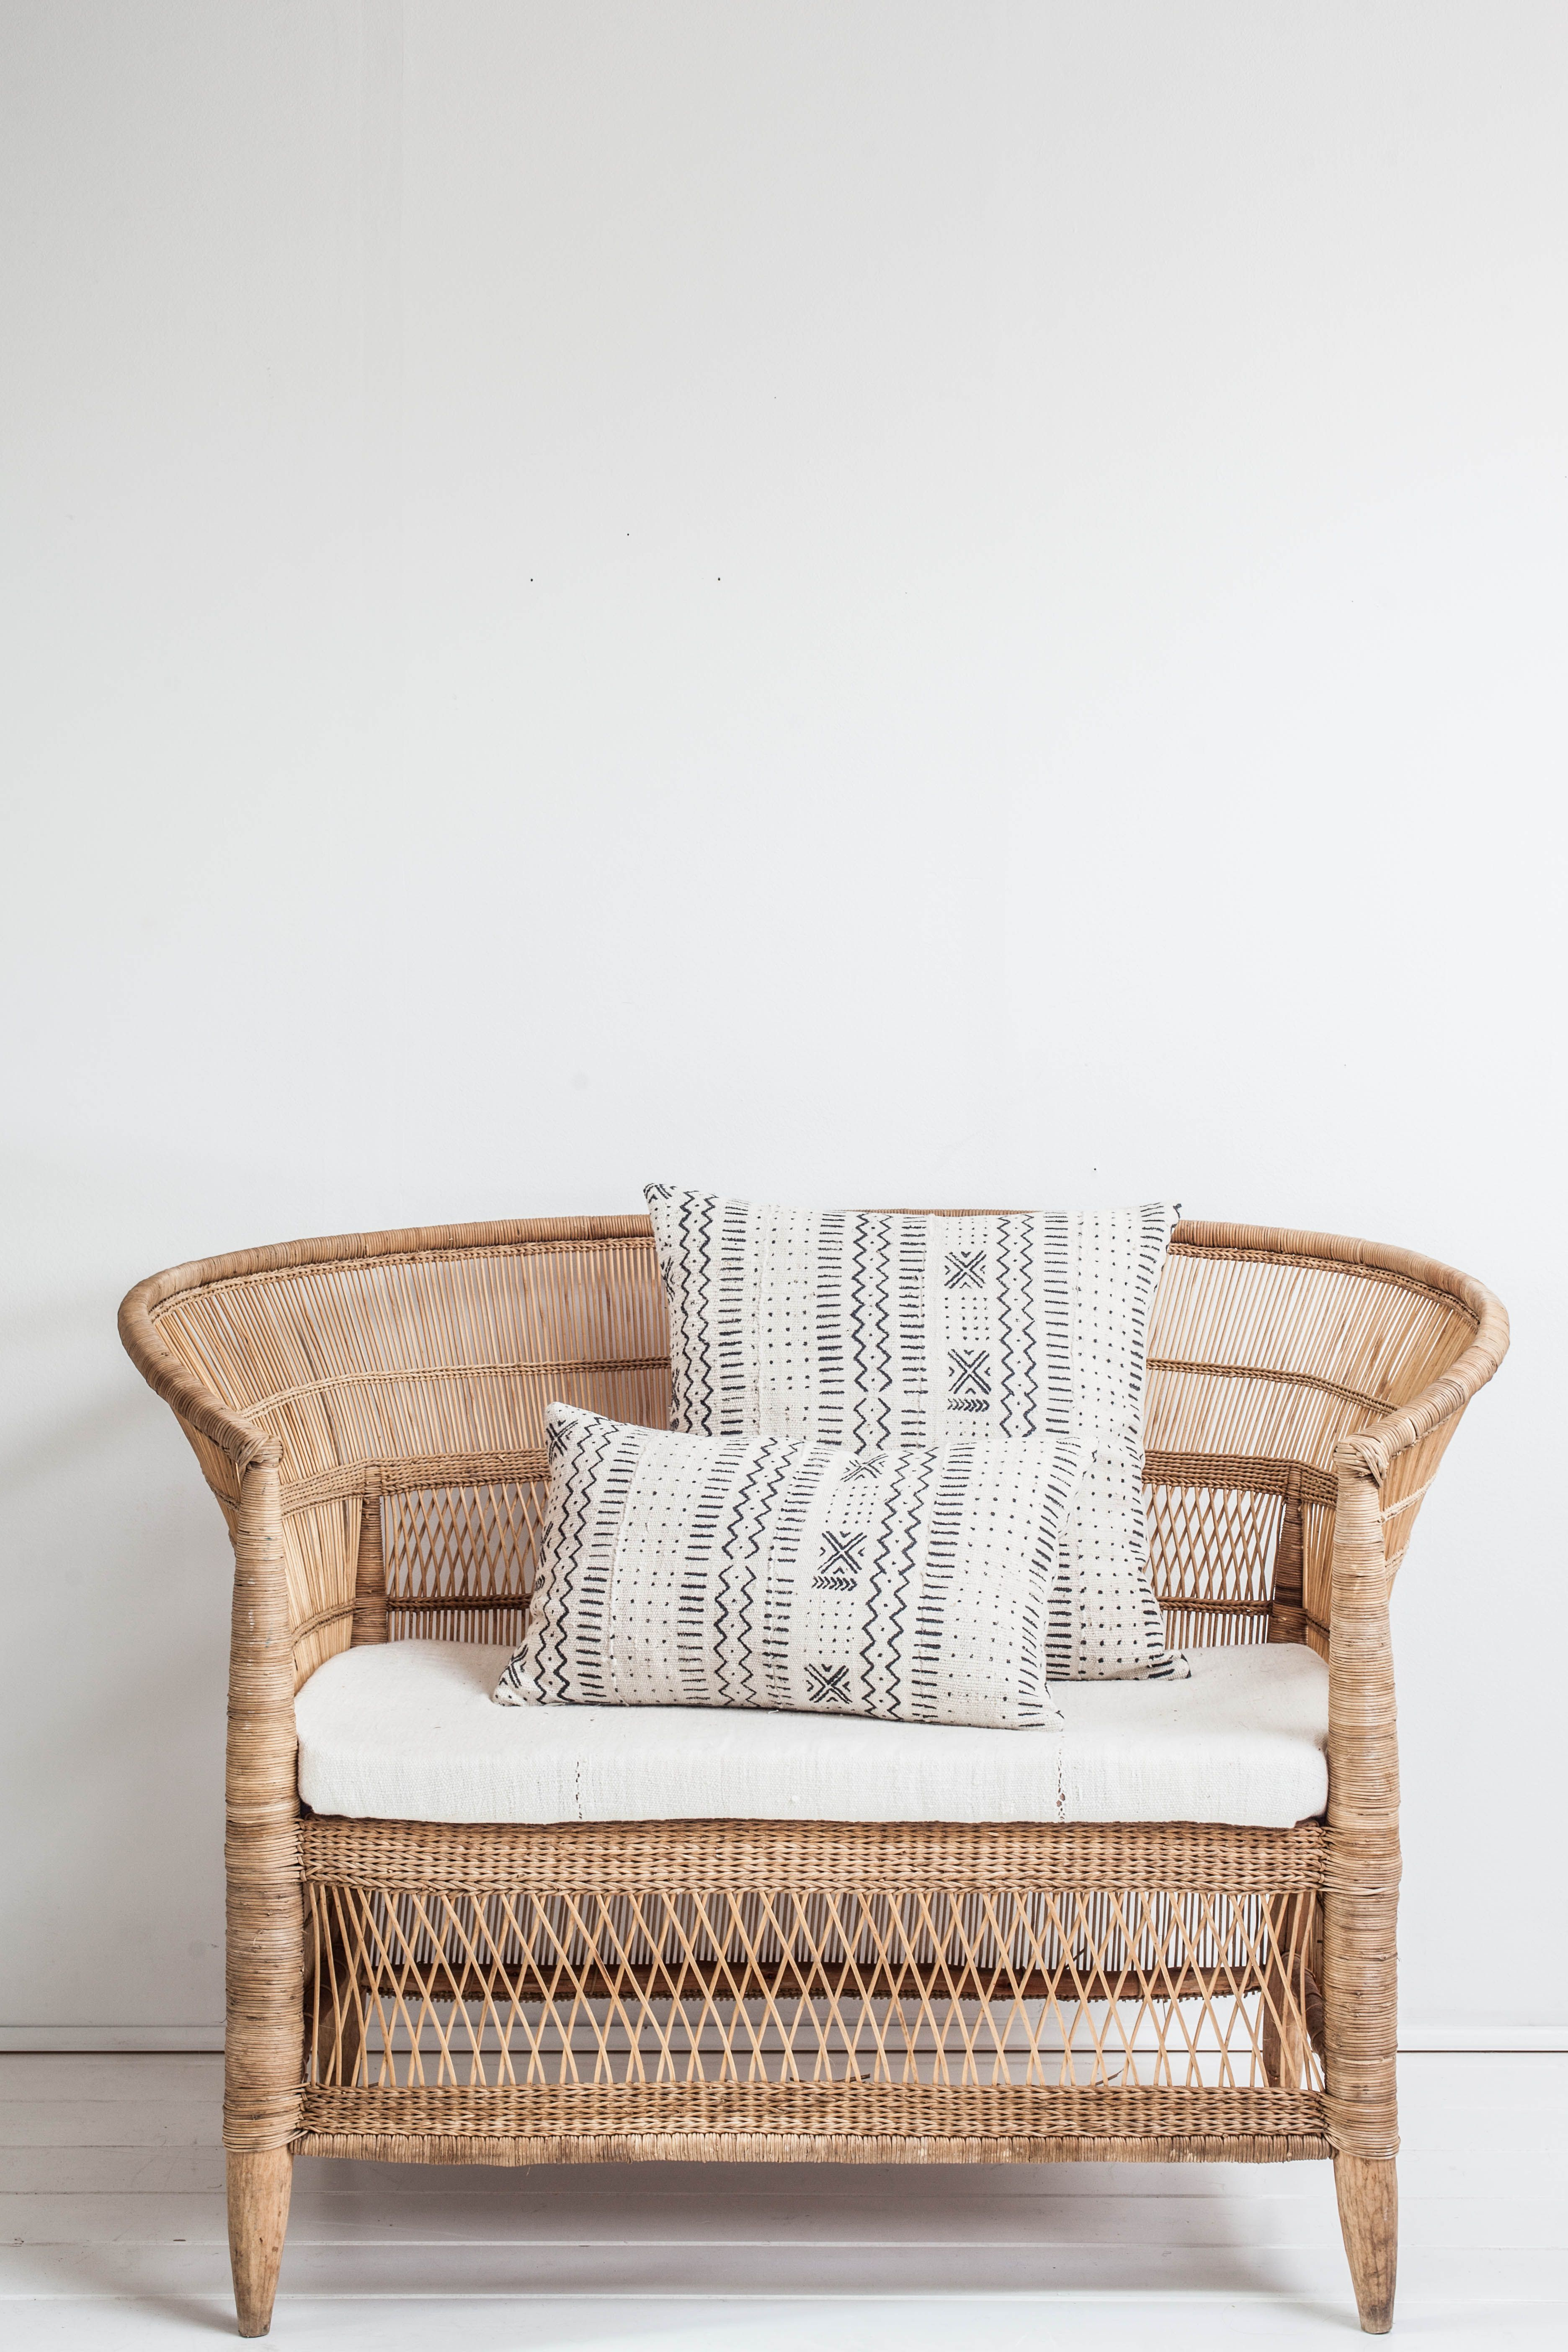 Where Can I Buy Cane For Chairs Ikea Floor Chair Woven Pinterest Interiors Rattan And House